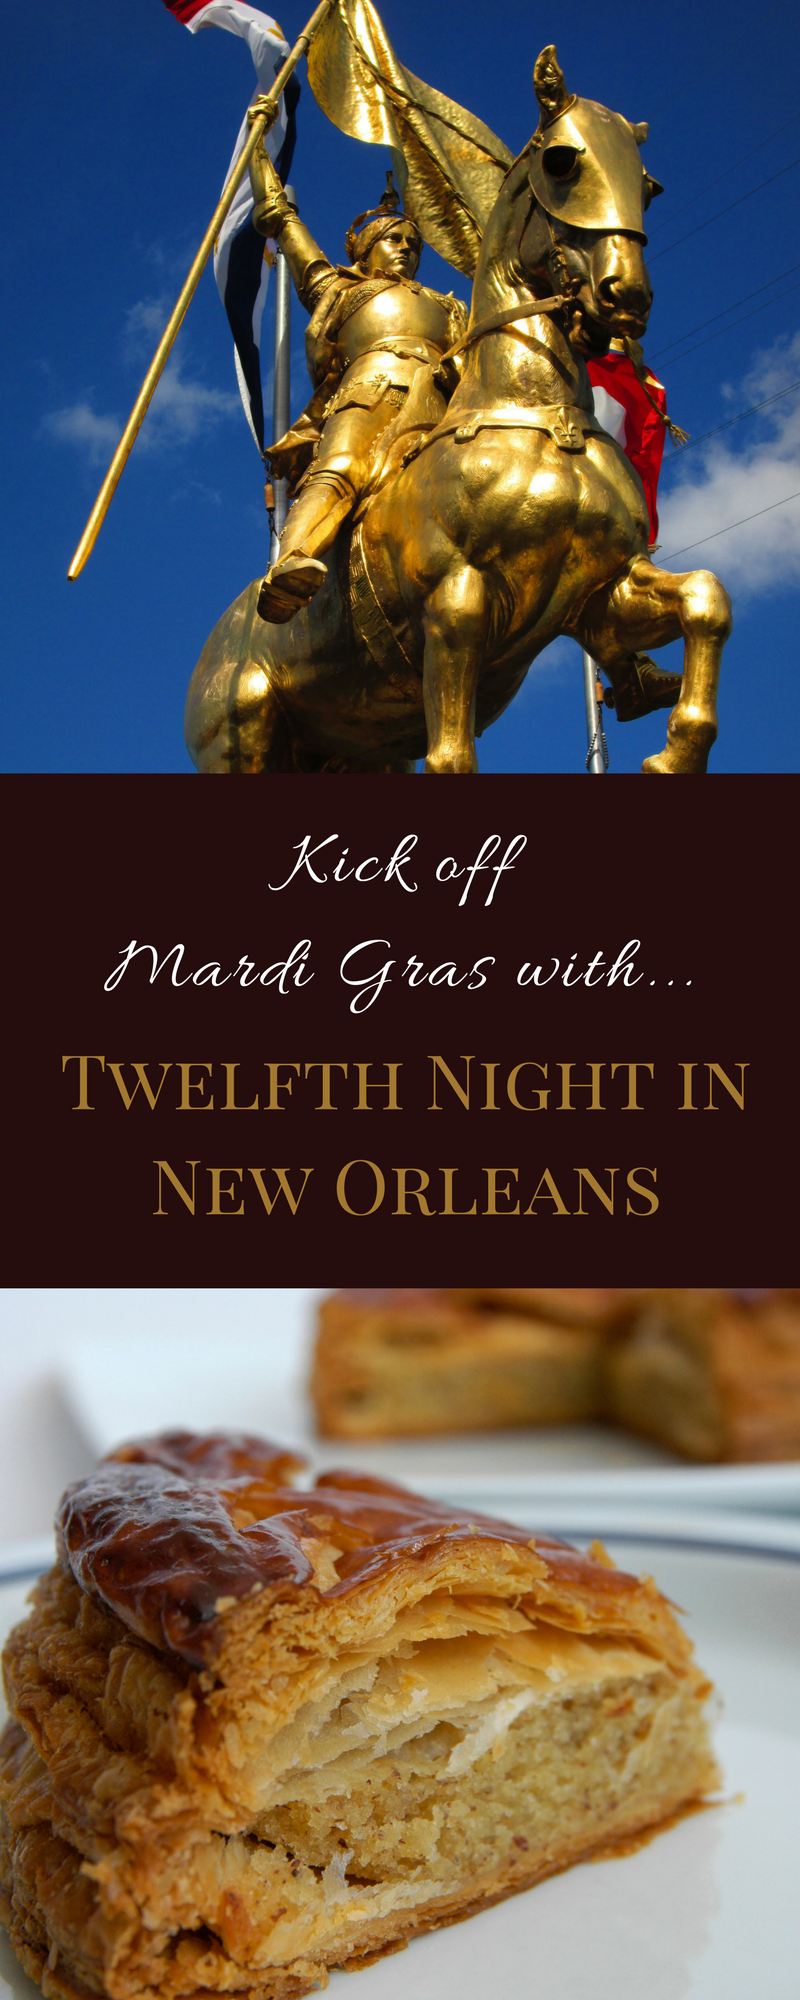 If you want to experience a taste of Carnival but without the crowds, Twelfth Night might be just the New Orleans experience you're looking for. Here's what to expect. (Photo credits: Stephen Rees and Yuichi Sakuraba)